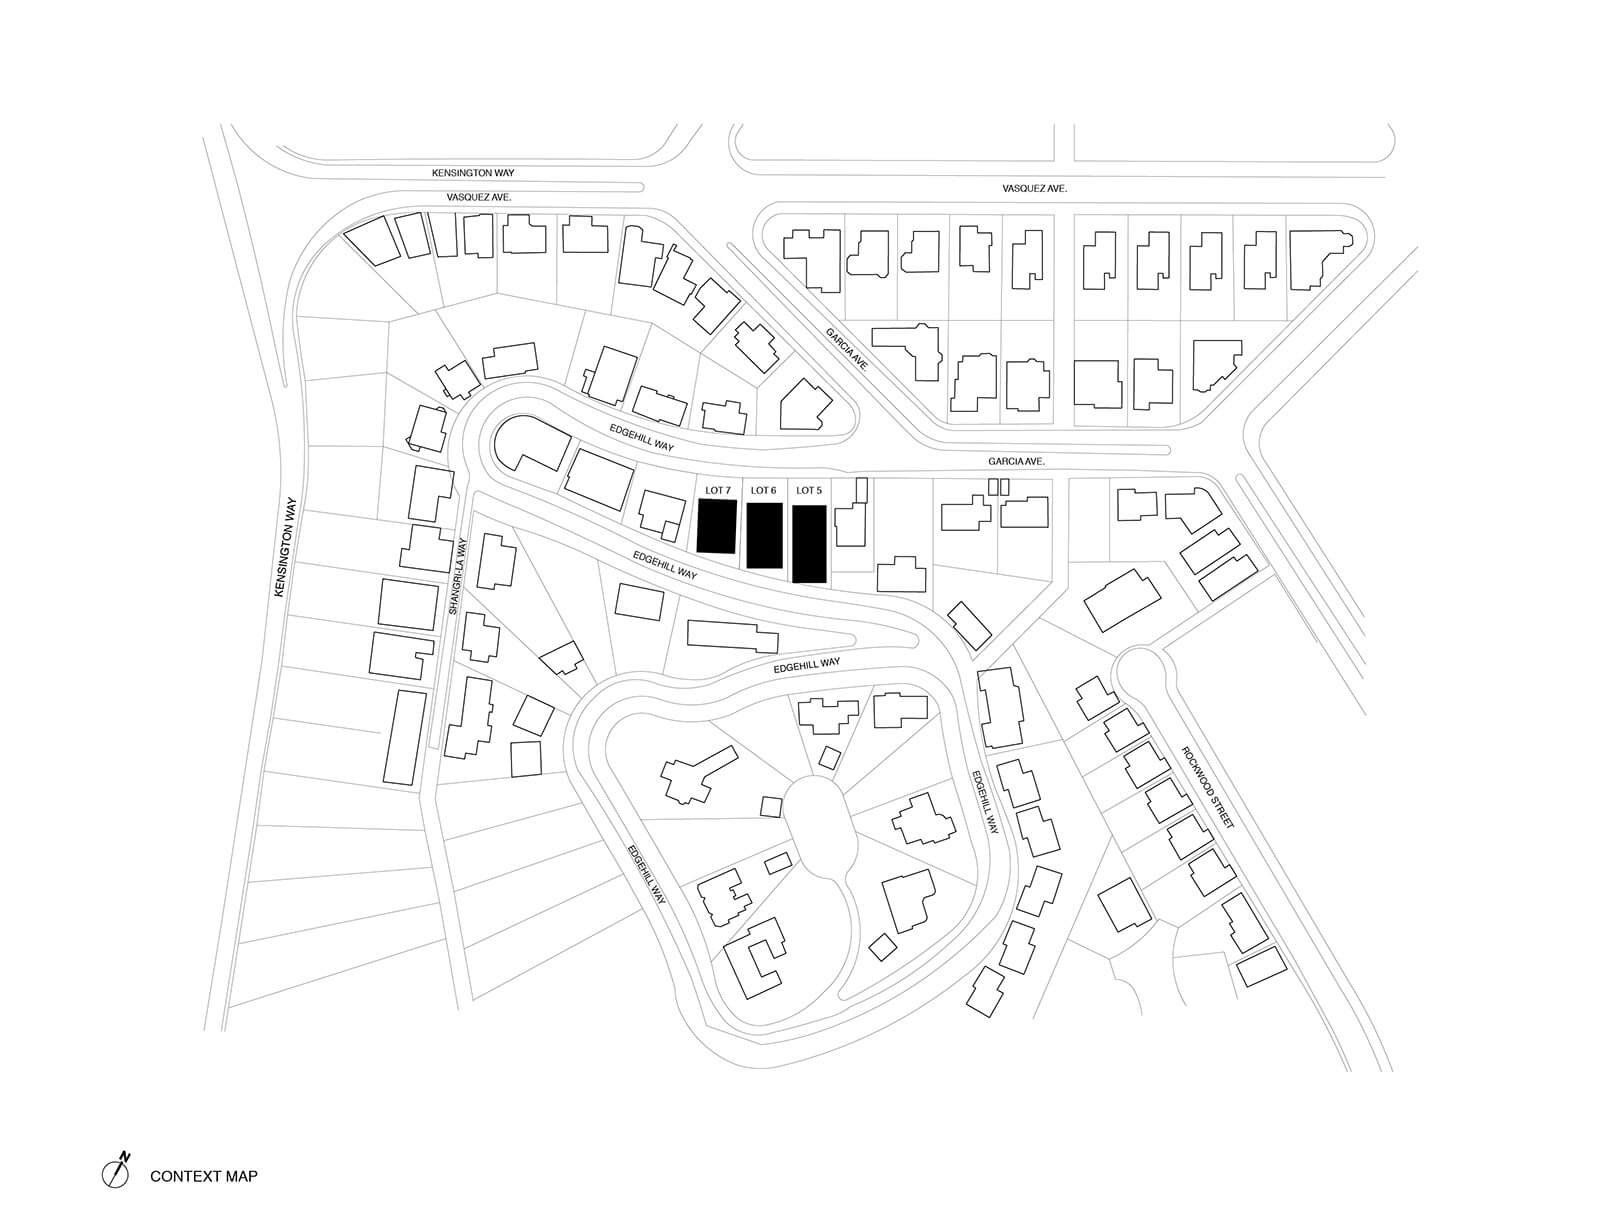 studio vara multifamily hillside master plan drawing context map